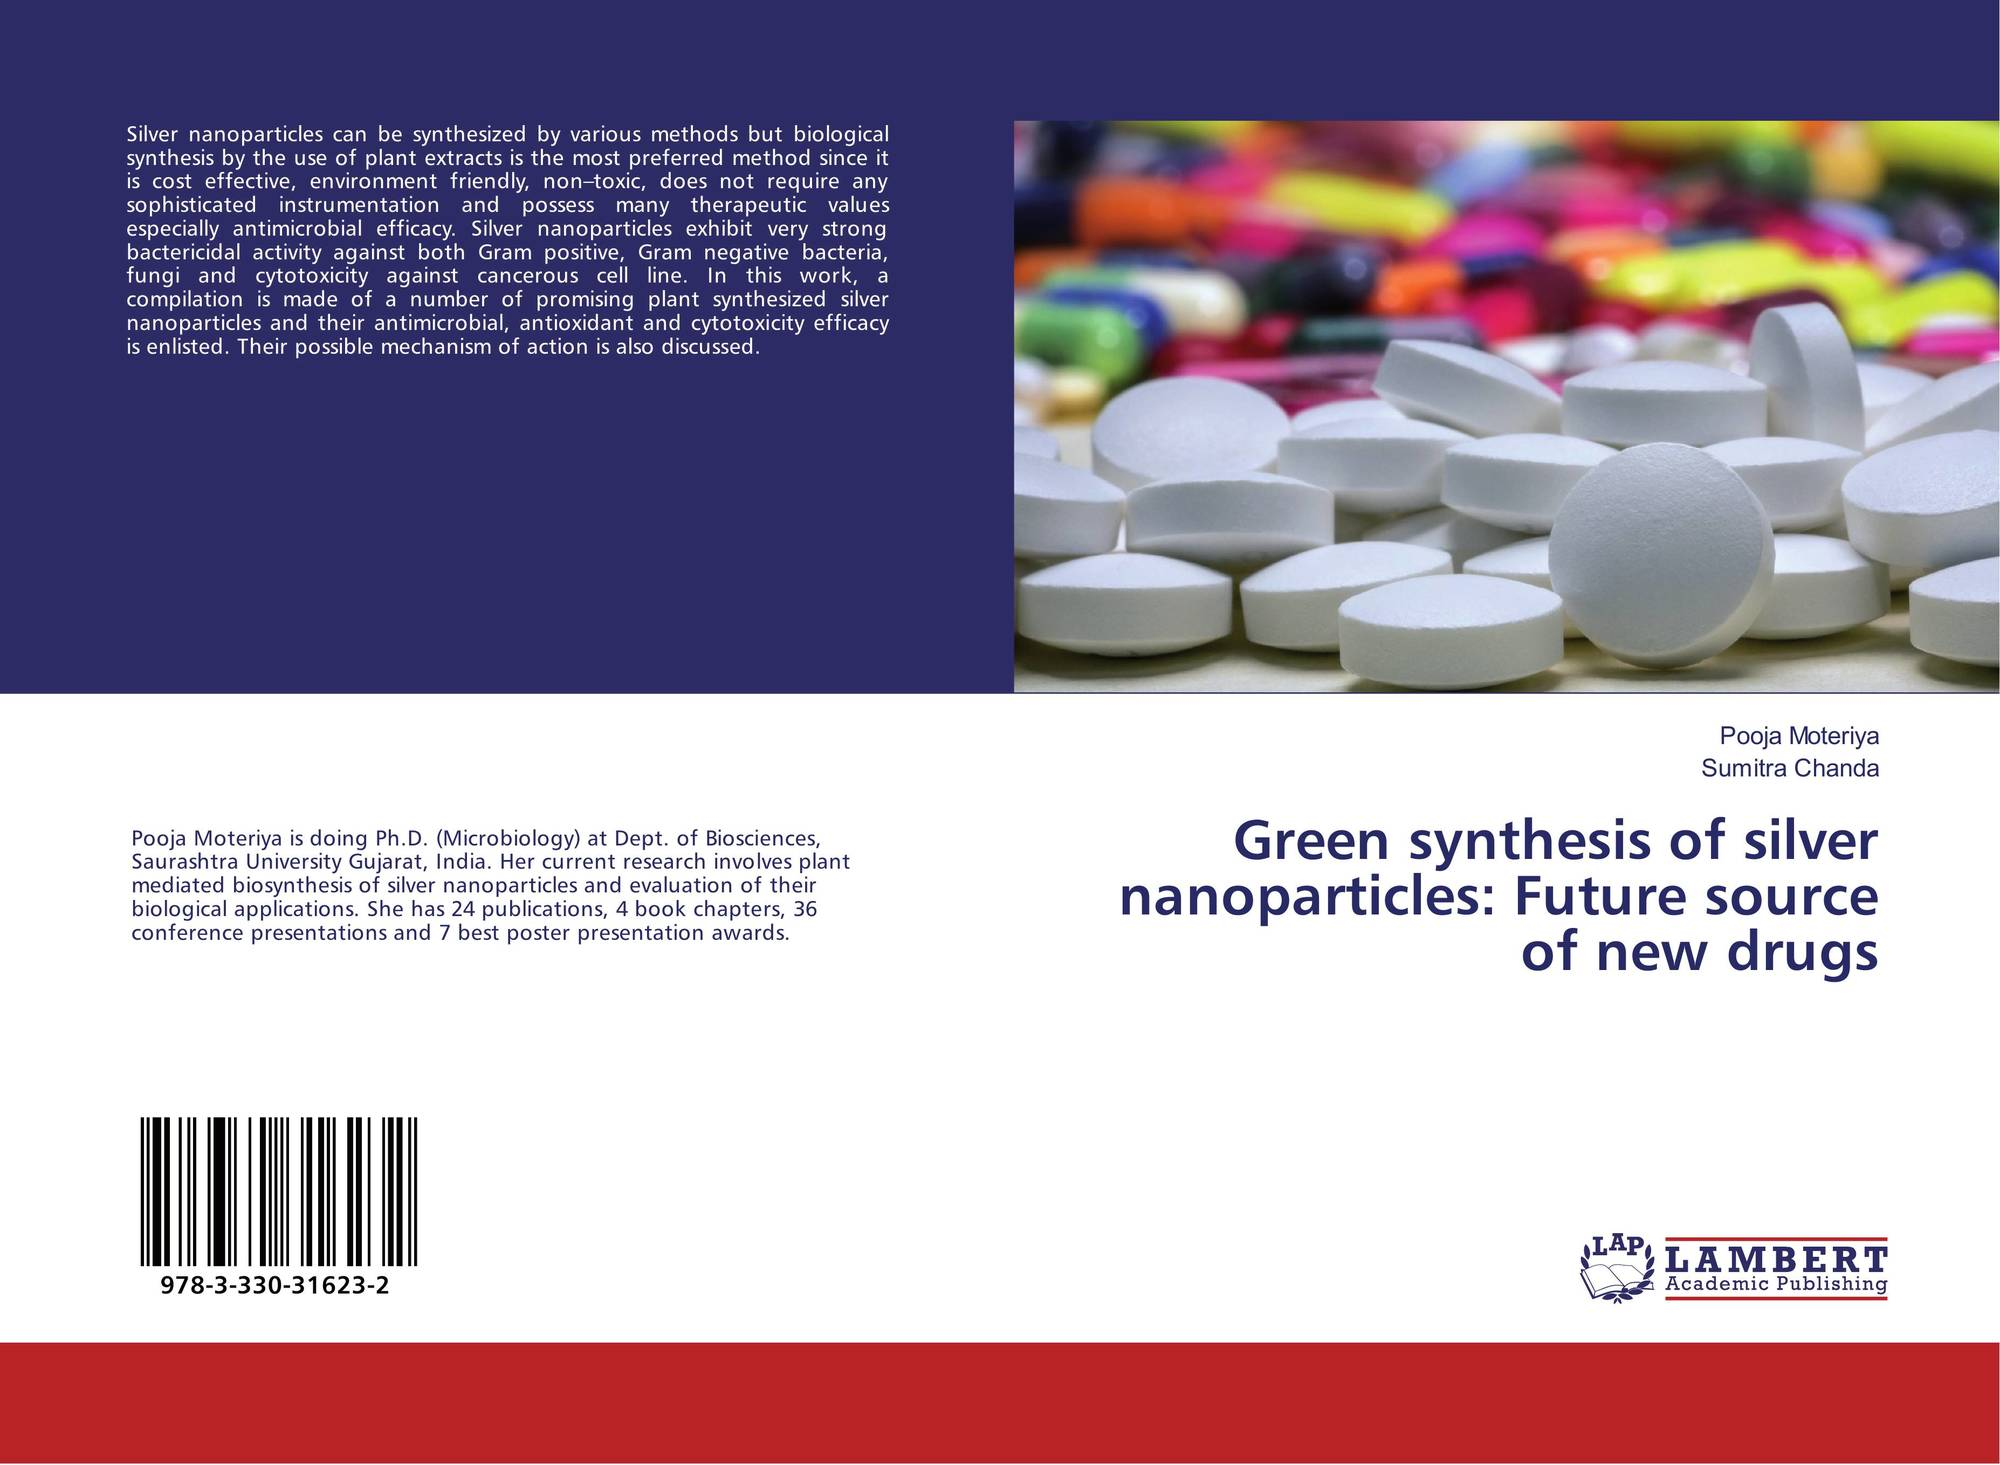 Green synthesis of silver nanoparticles: Future source of